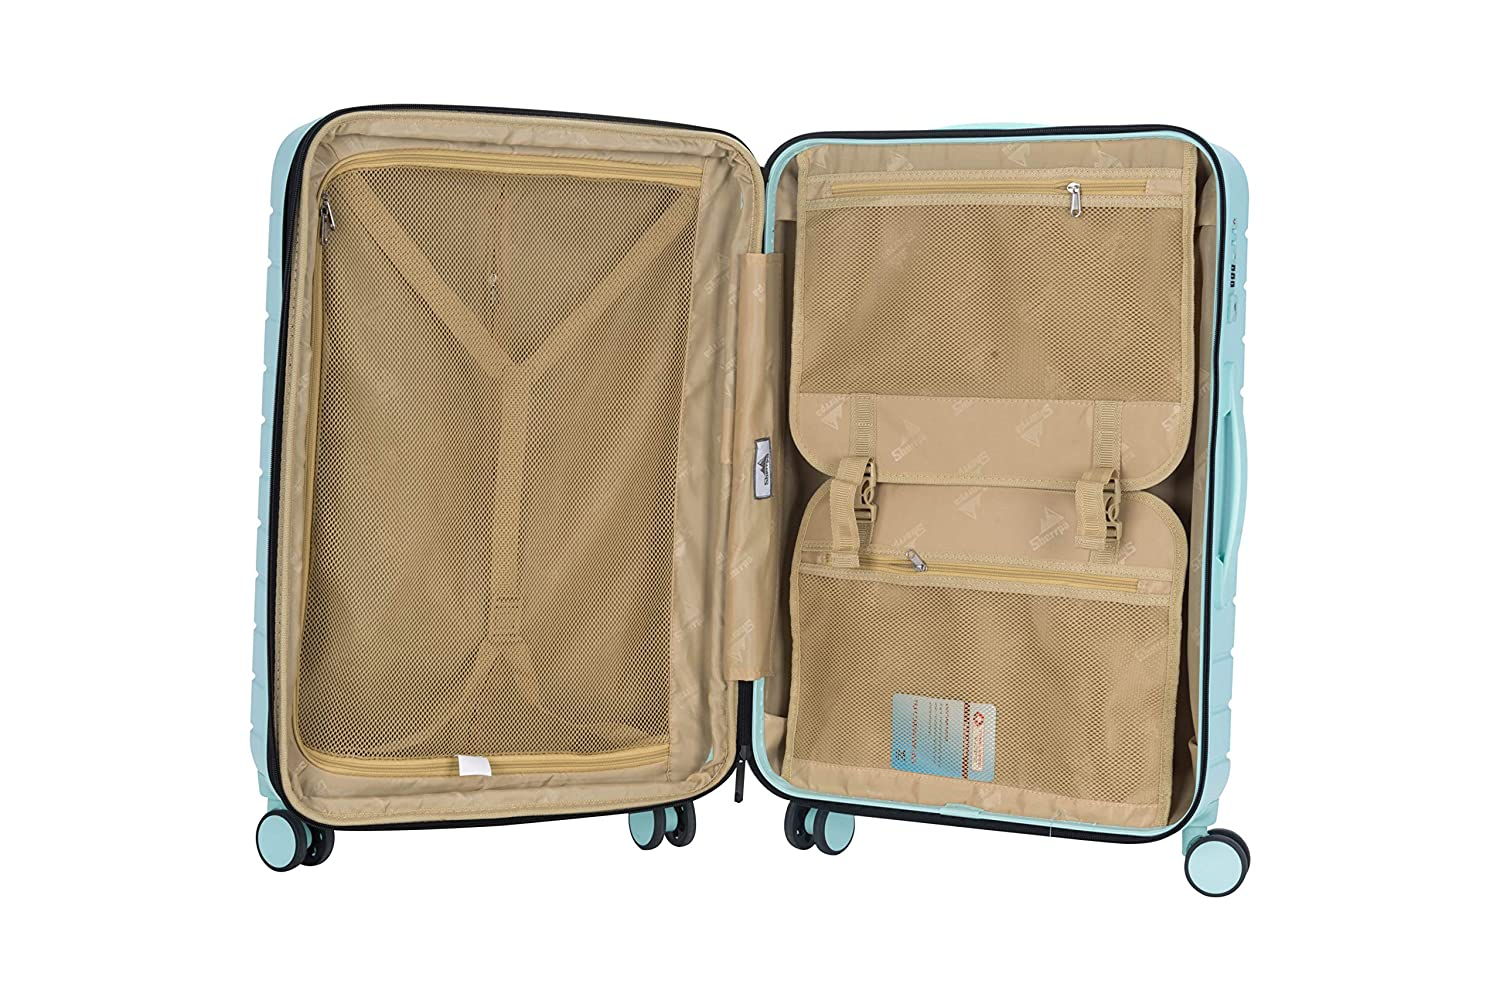 Sherrpa Destiny Luggage Hardside Lightweight Expandable Spinner Carry on 20in 25in 29in L 29inch , Mint